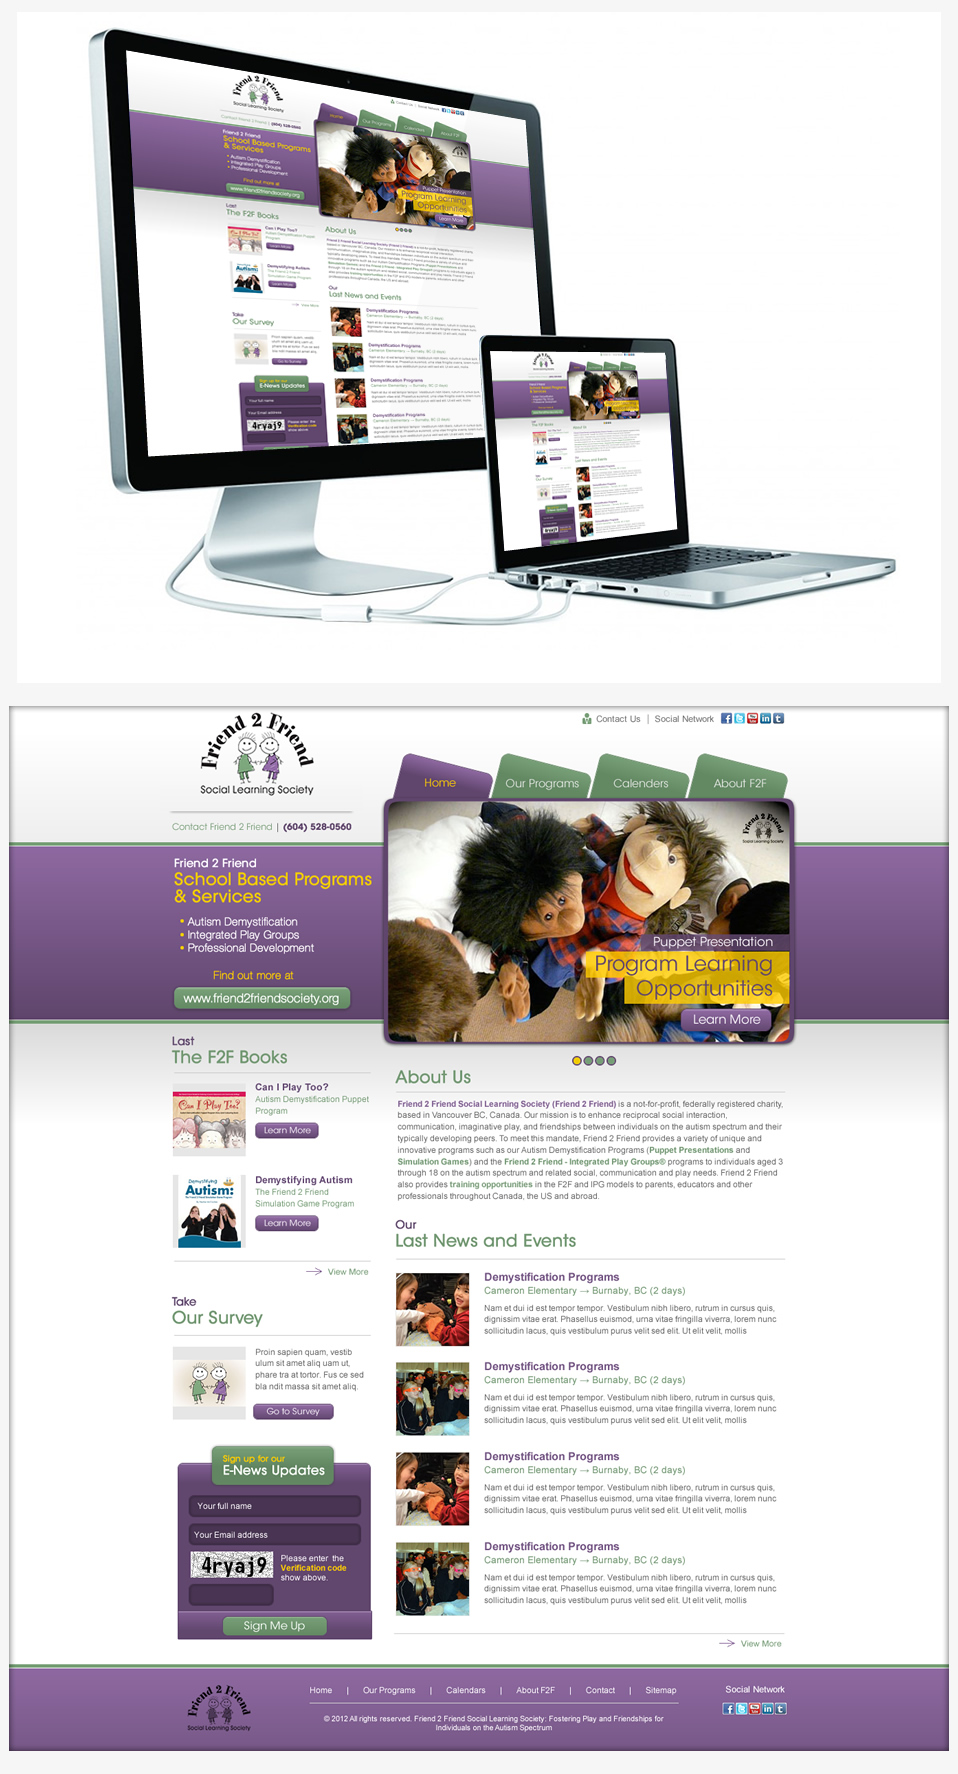 Web Page Design by Juma Studio - Entry No. 8 in the Web Page Design Contest Web Page Design Needed for Exciting New Company Friend 2 Friend Social Learning Society.